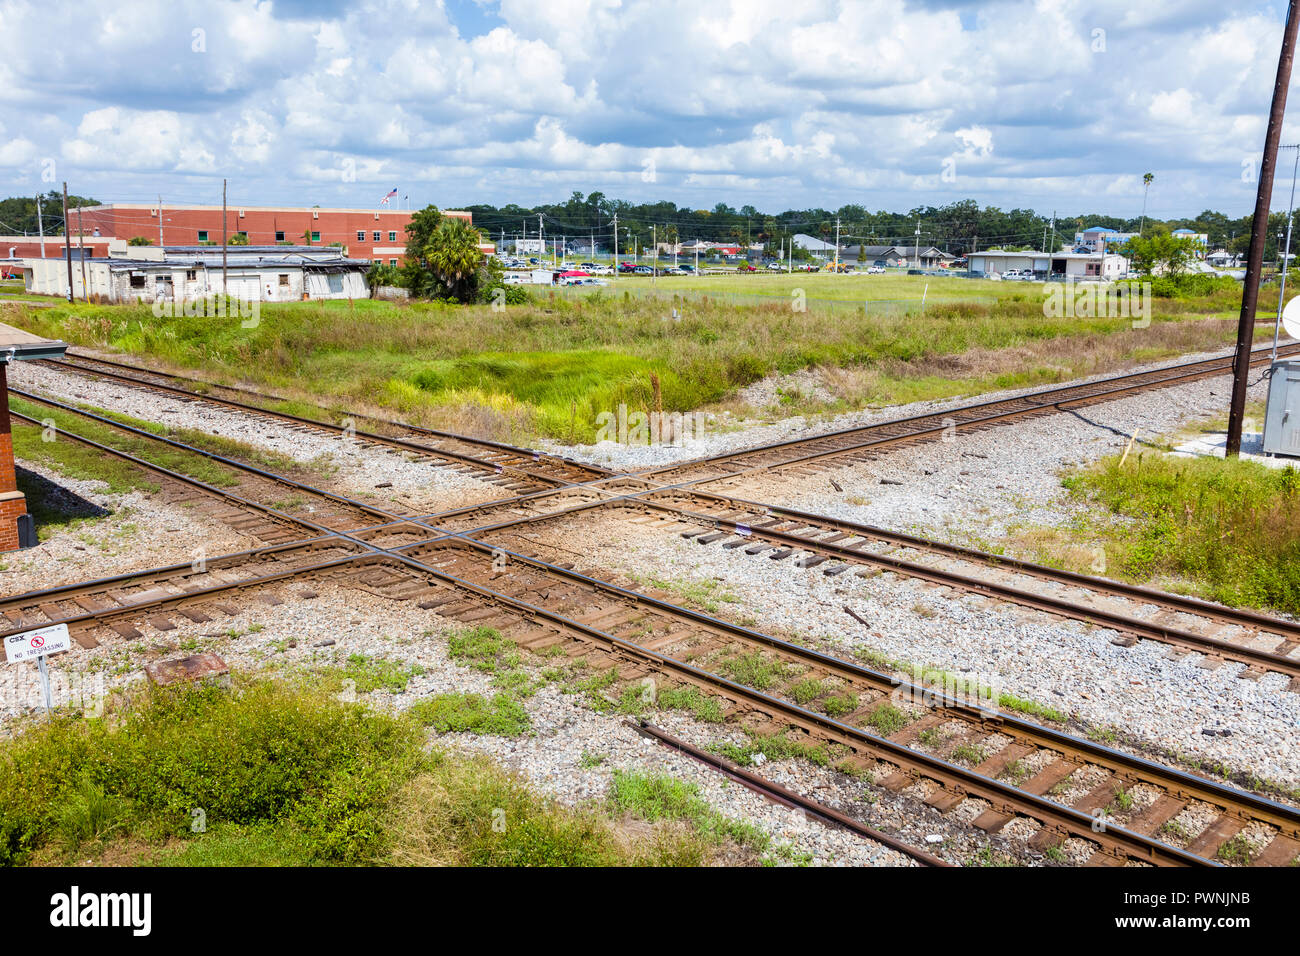 Railroad tracks at the Union Station Depot and Train Veiwing